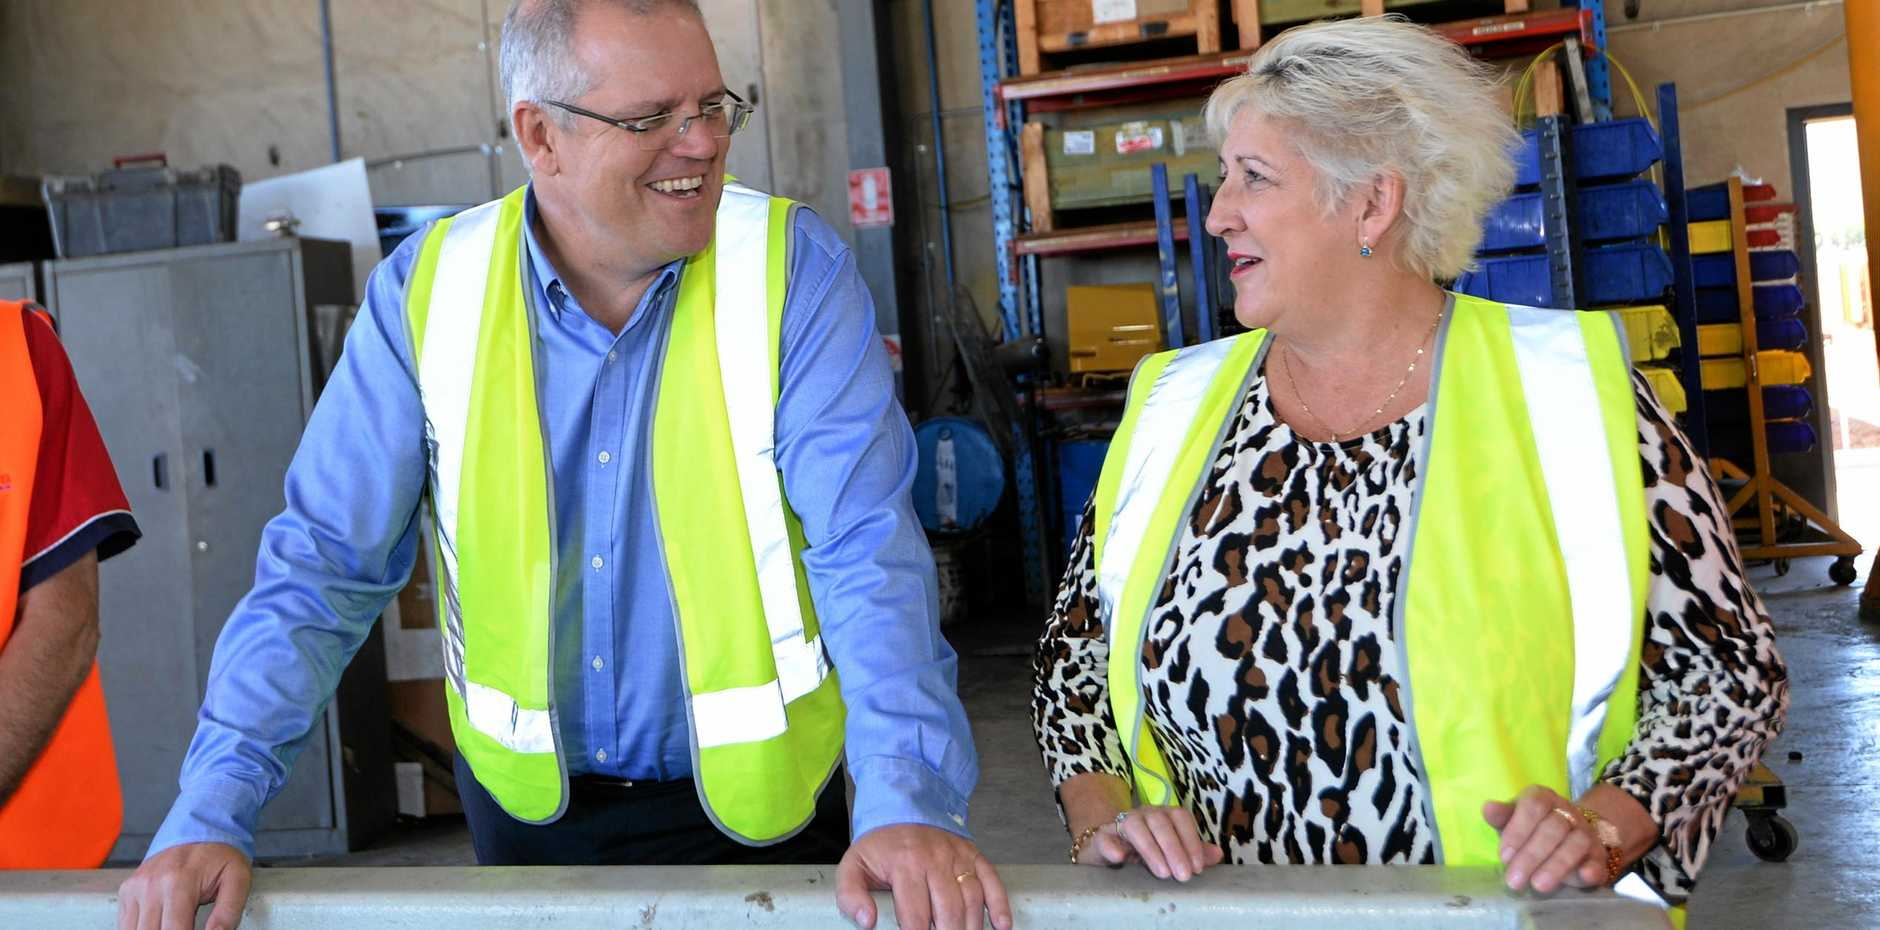 TROUBLED TIMES: The Liberal Party's poor showing in the Wentworth by-election has Prime Minister Scott Morrison and Capricornia MP Michelle Landry looking for answers.